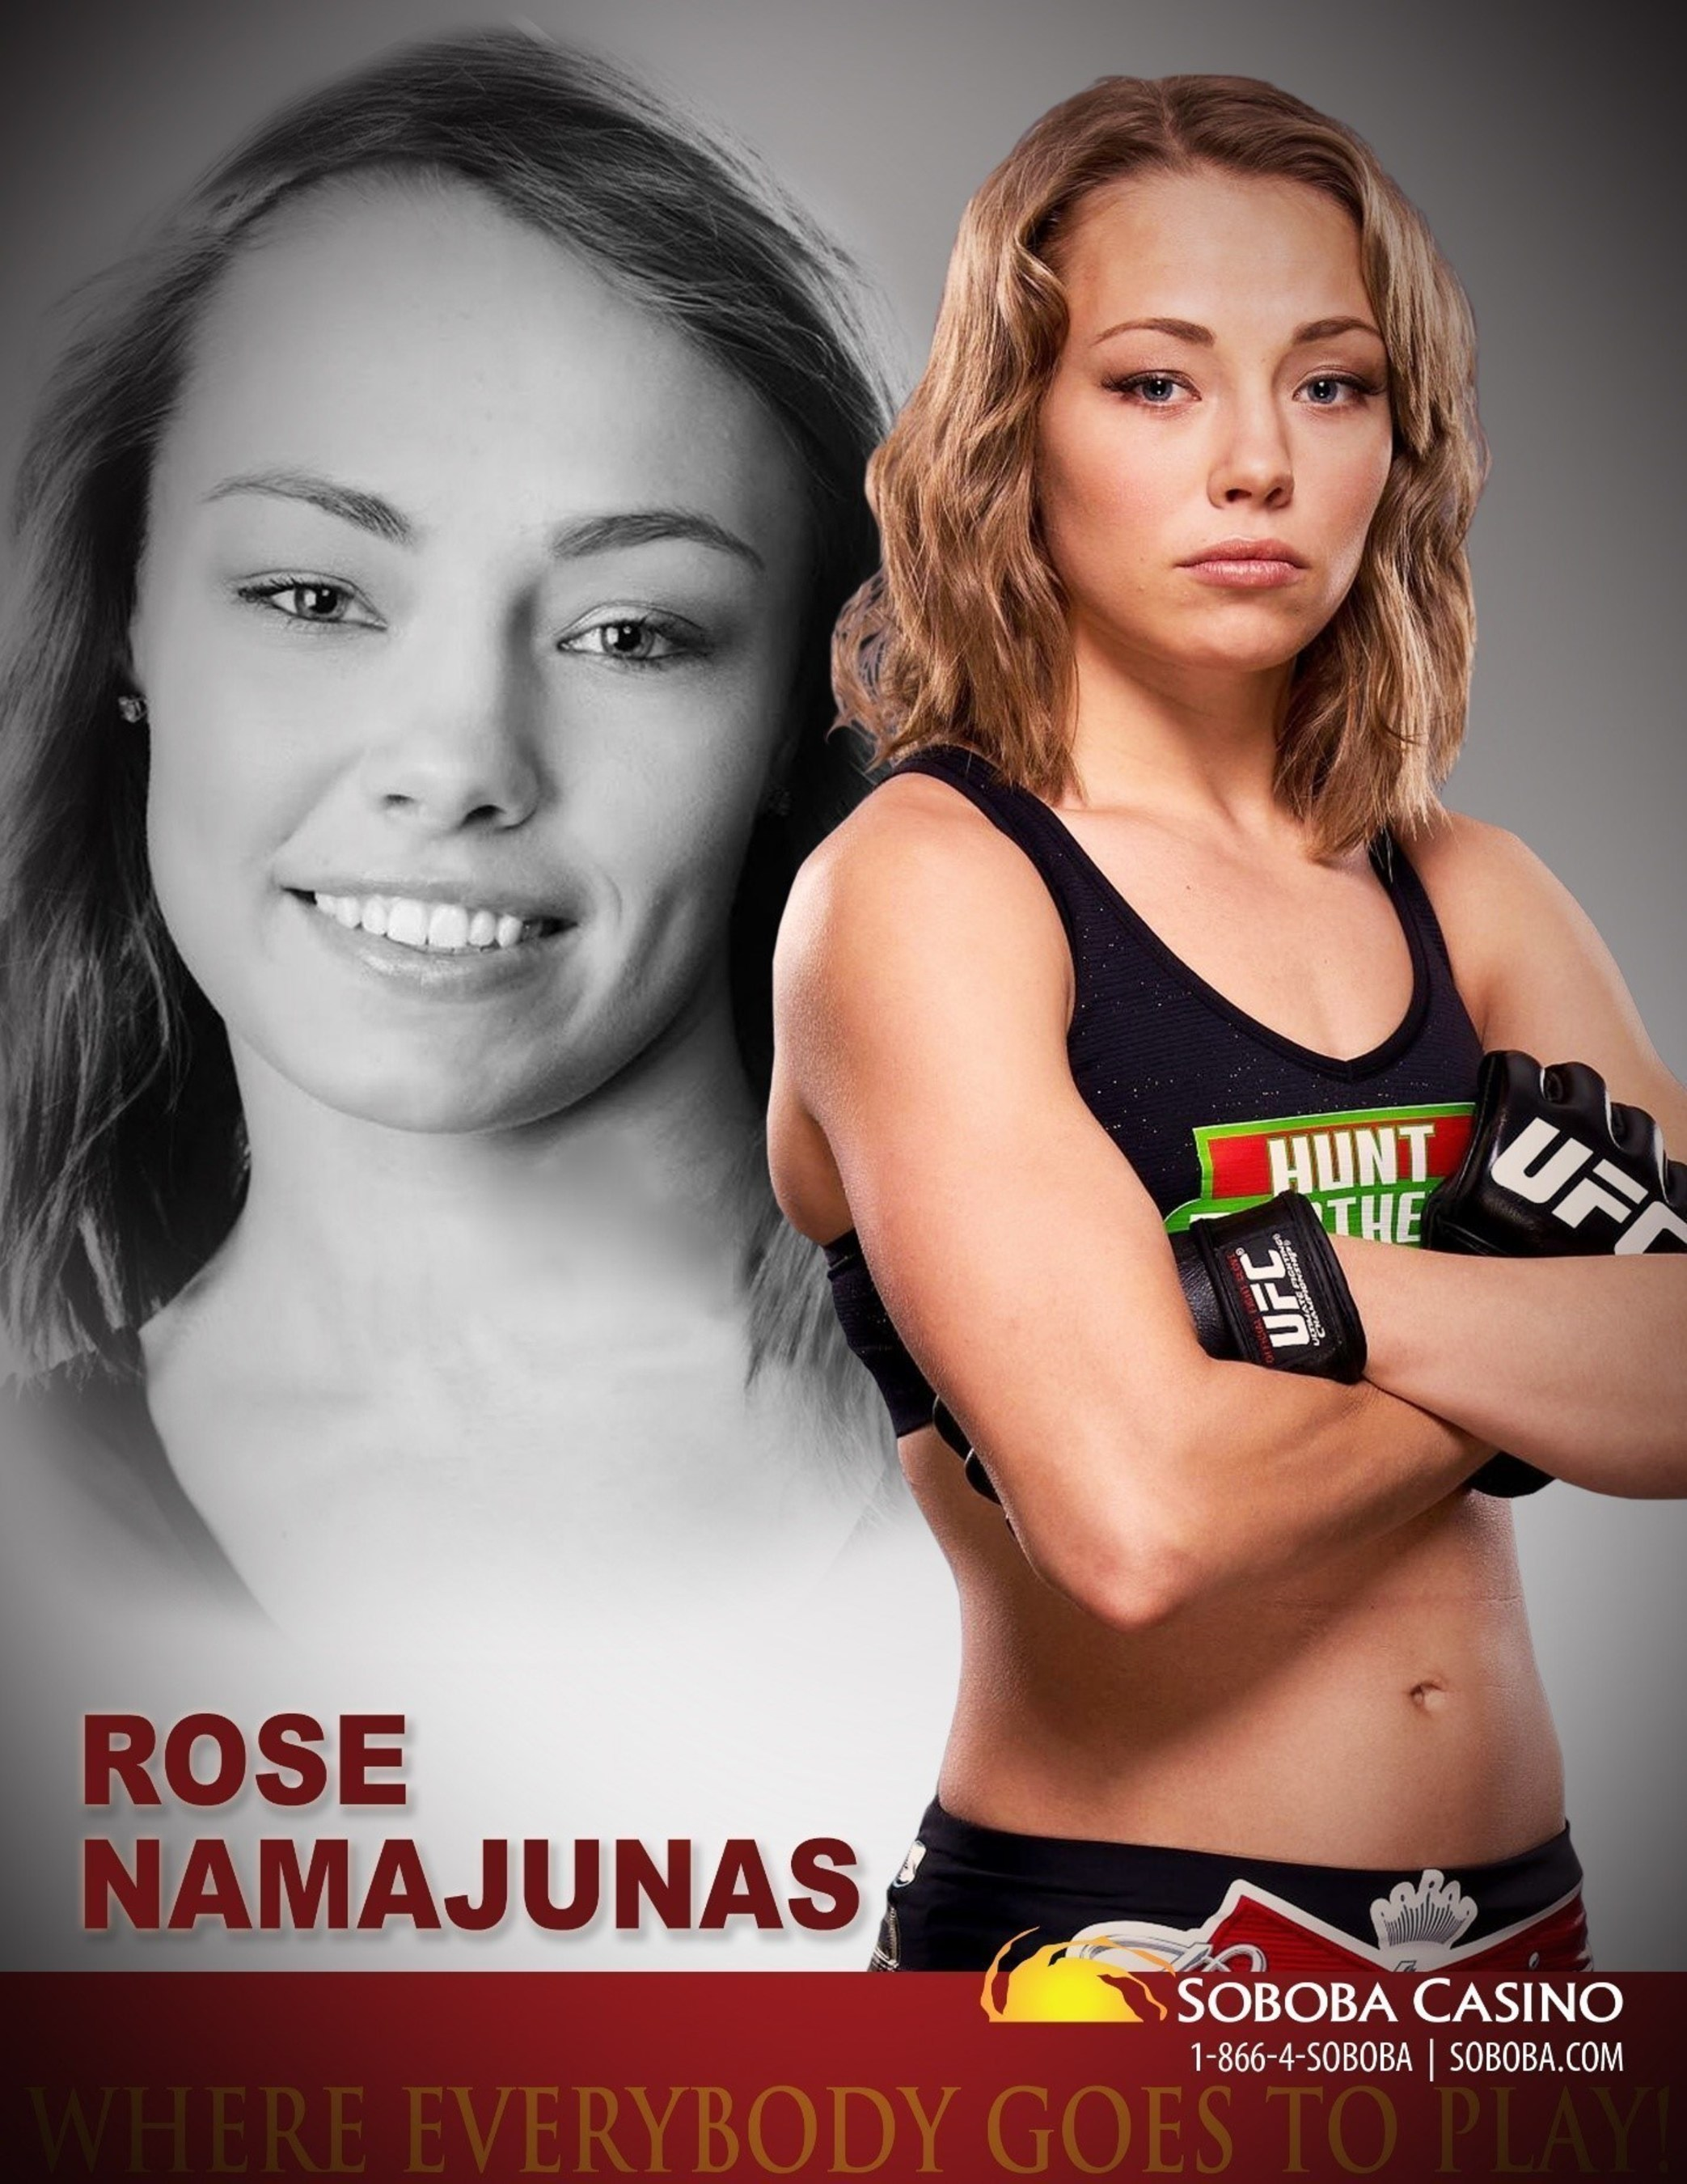 Strawweight fighter Rose Namajunas scheduled to meet, sign autographs, and take pictures with fans on November 14th.